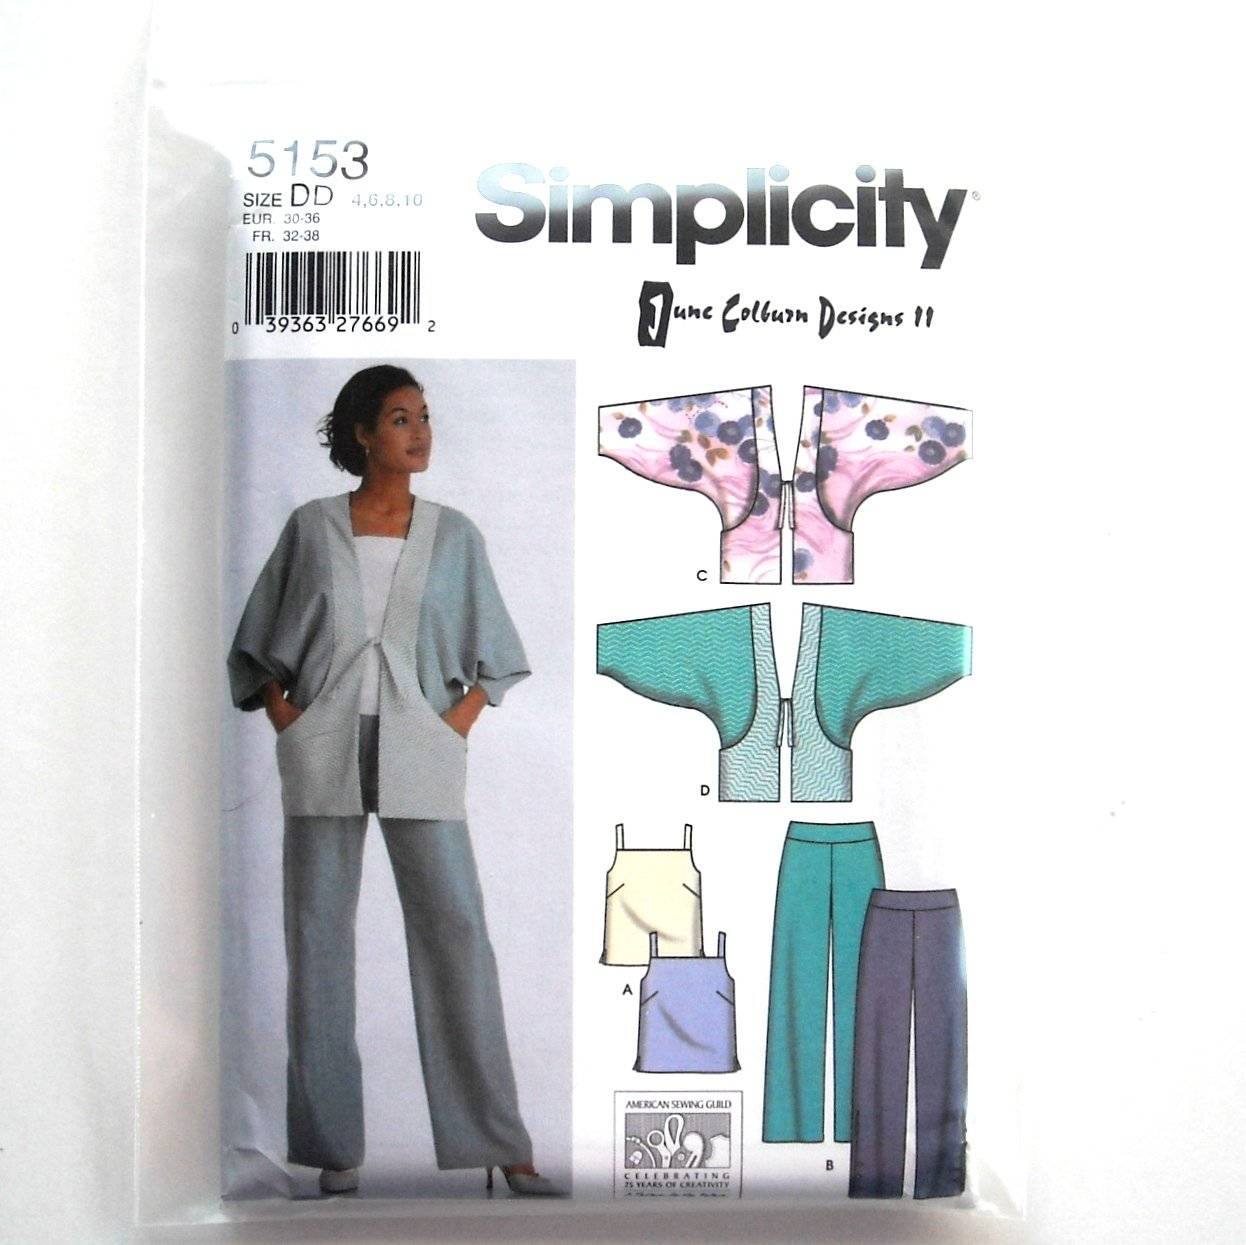 Pants Tops Jacket Misses 4 6 8 10 Simplicity Sewing Pattern 5153